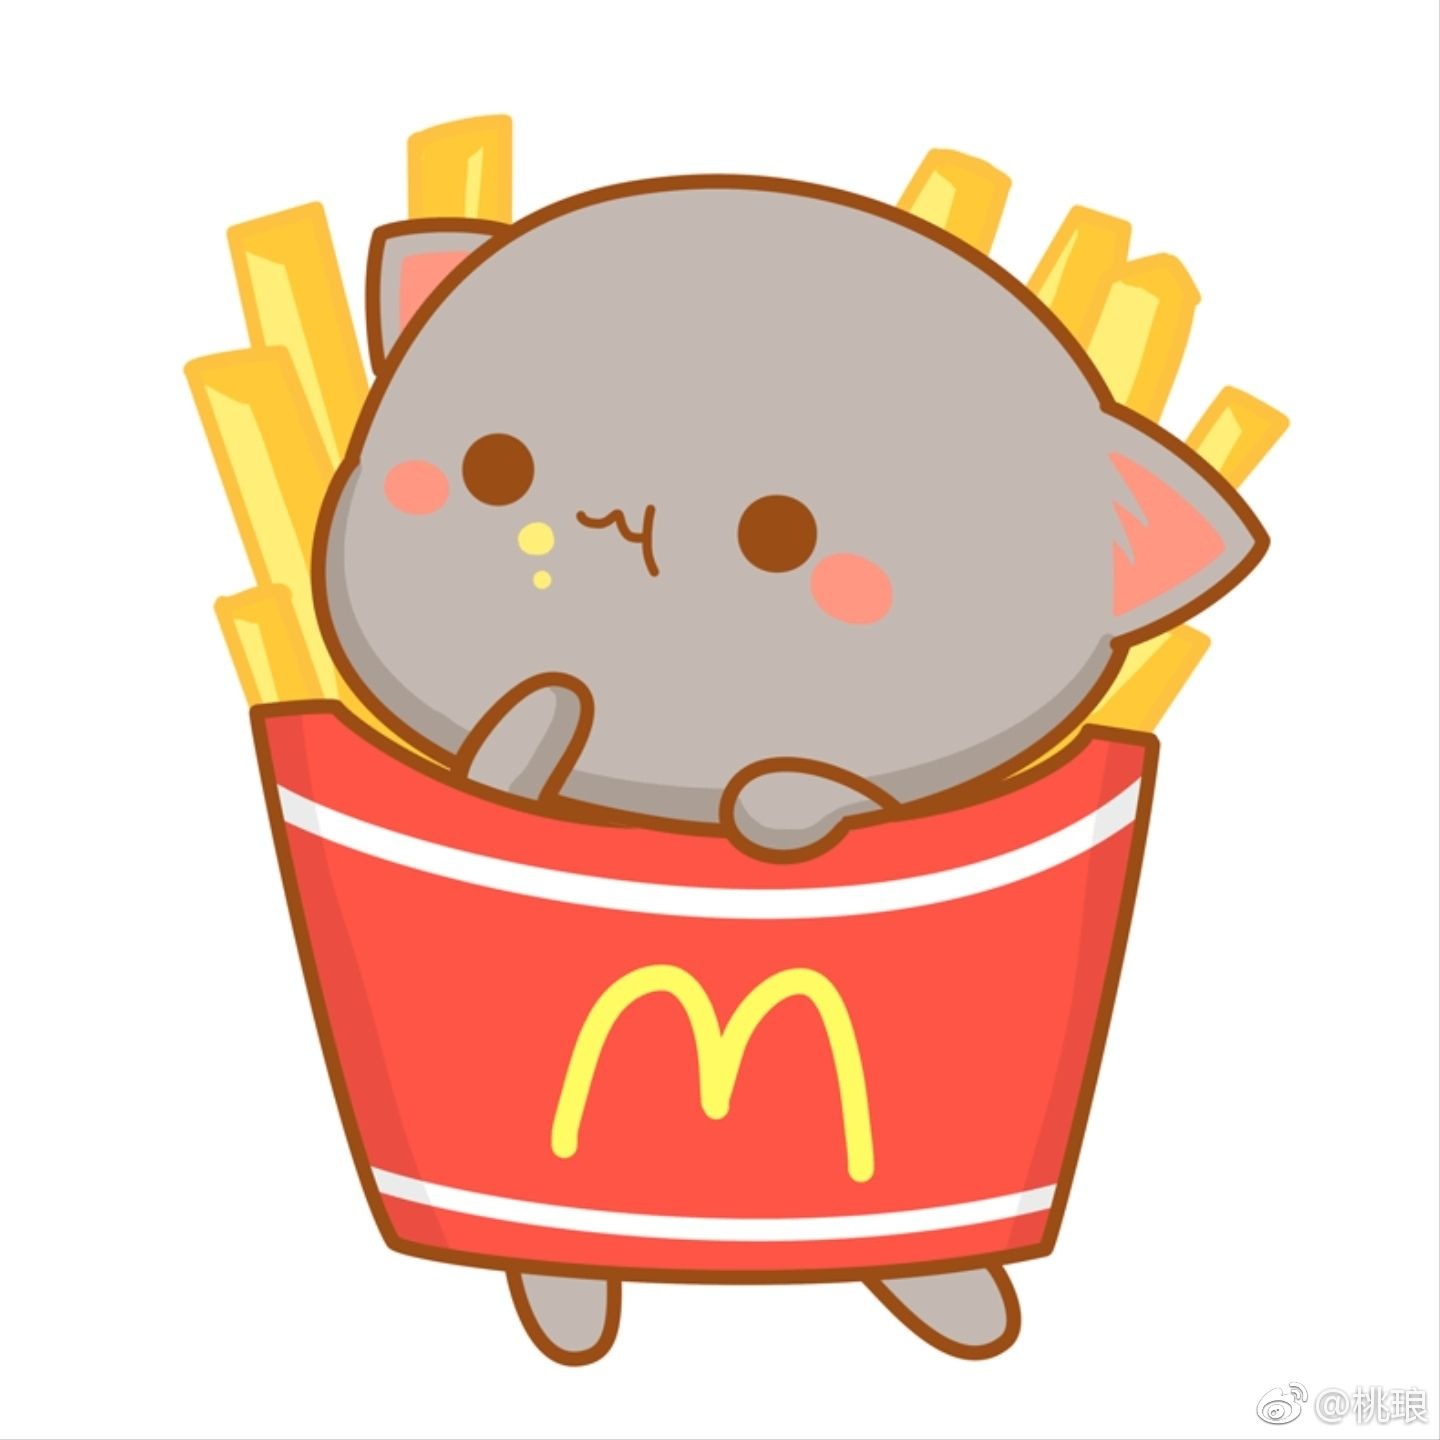 Save Follow Me Băng Cute Cat Illustration Cute Kawaii Animals Cute Cat Gif